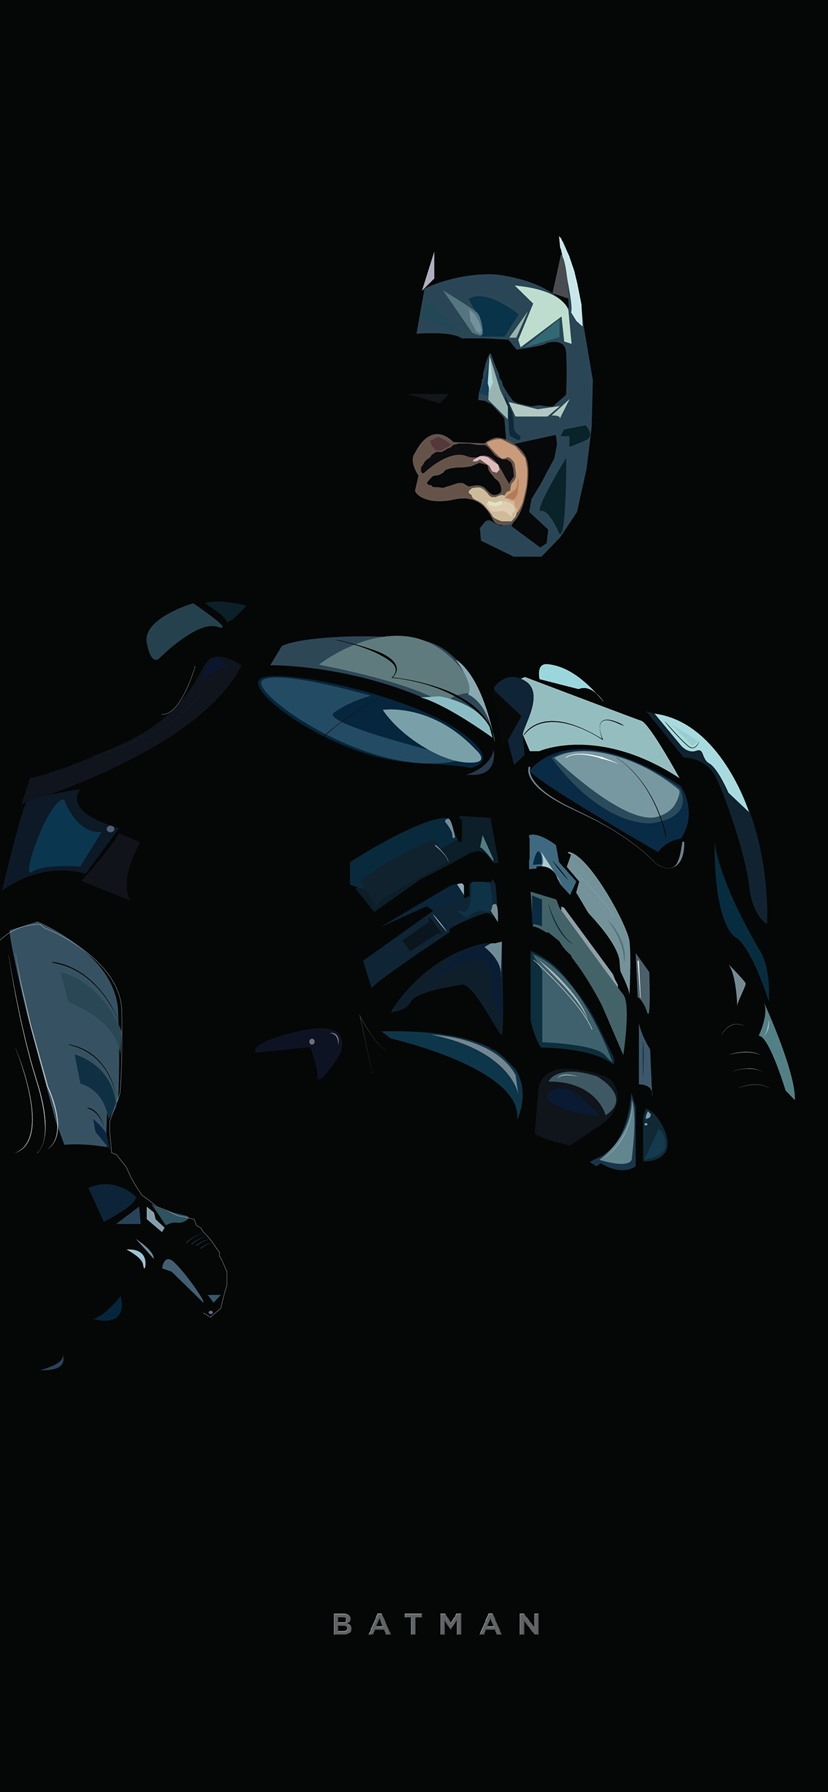 Wallpaper Batman Superhero Art Picture Black Background 7680x4320 Uhd 8k Picture Image